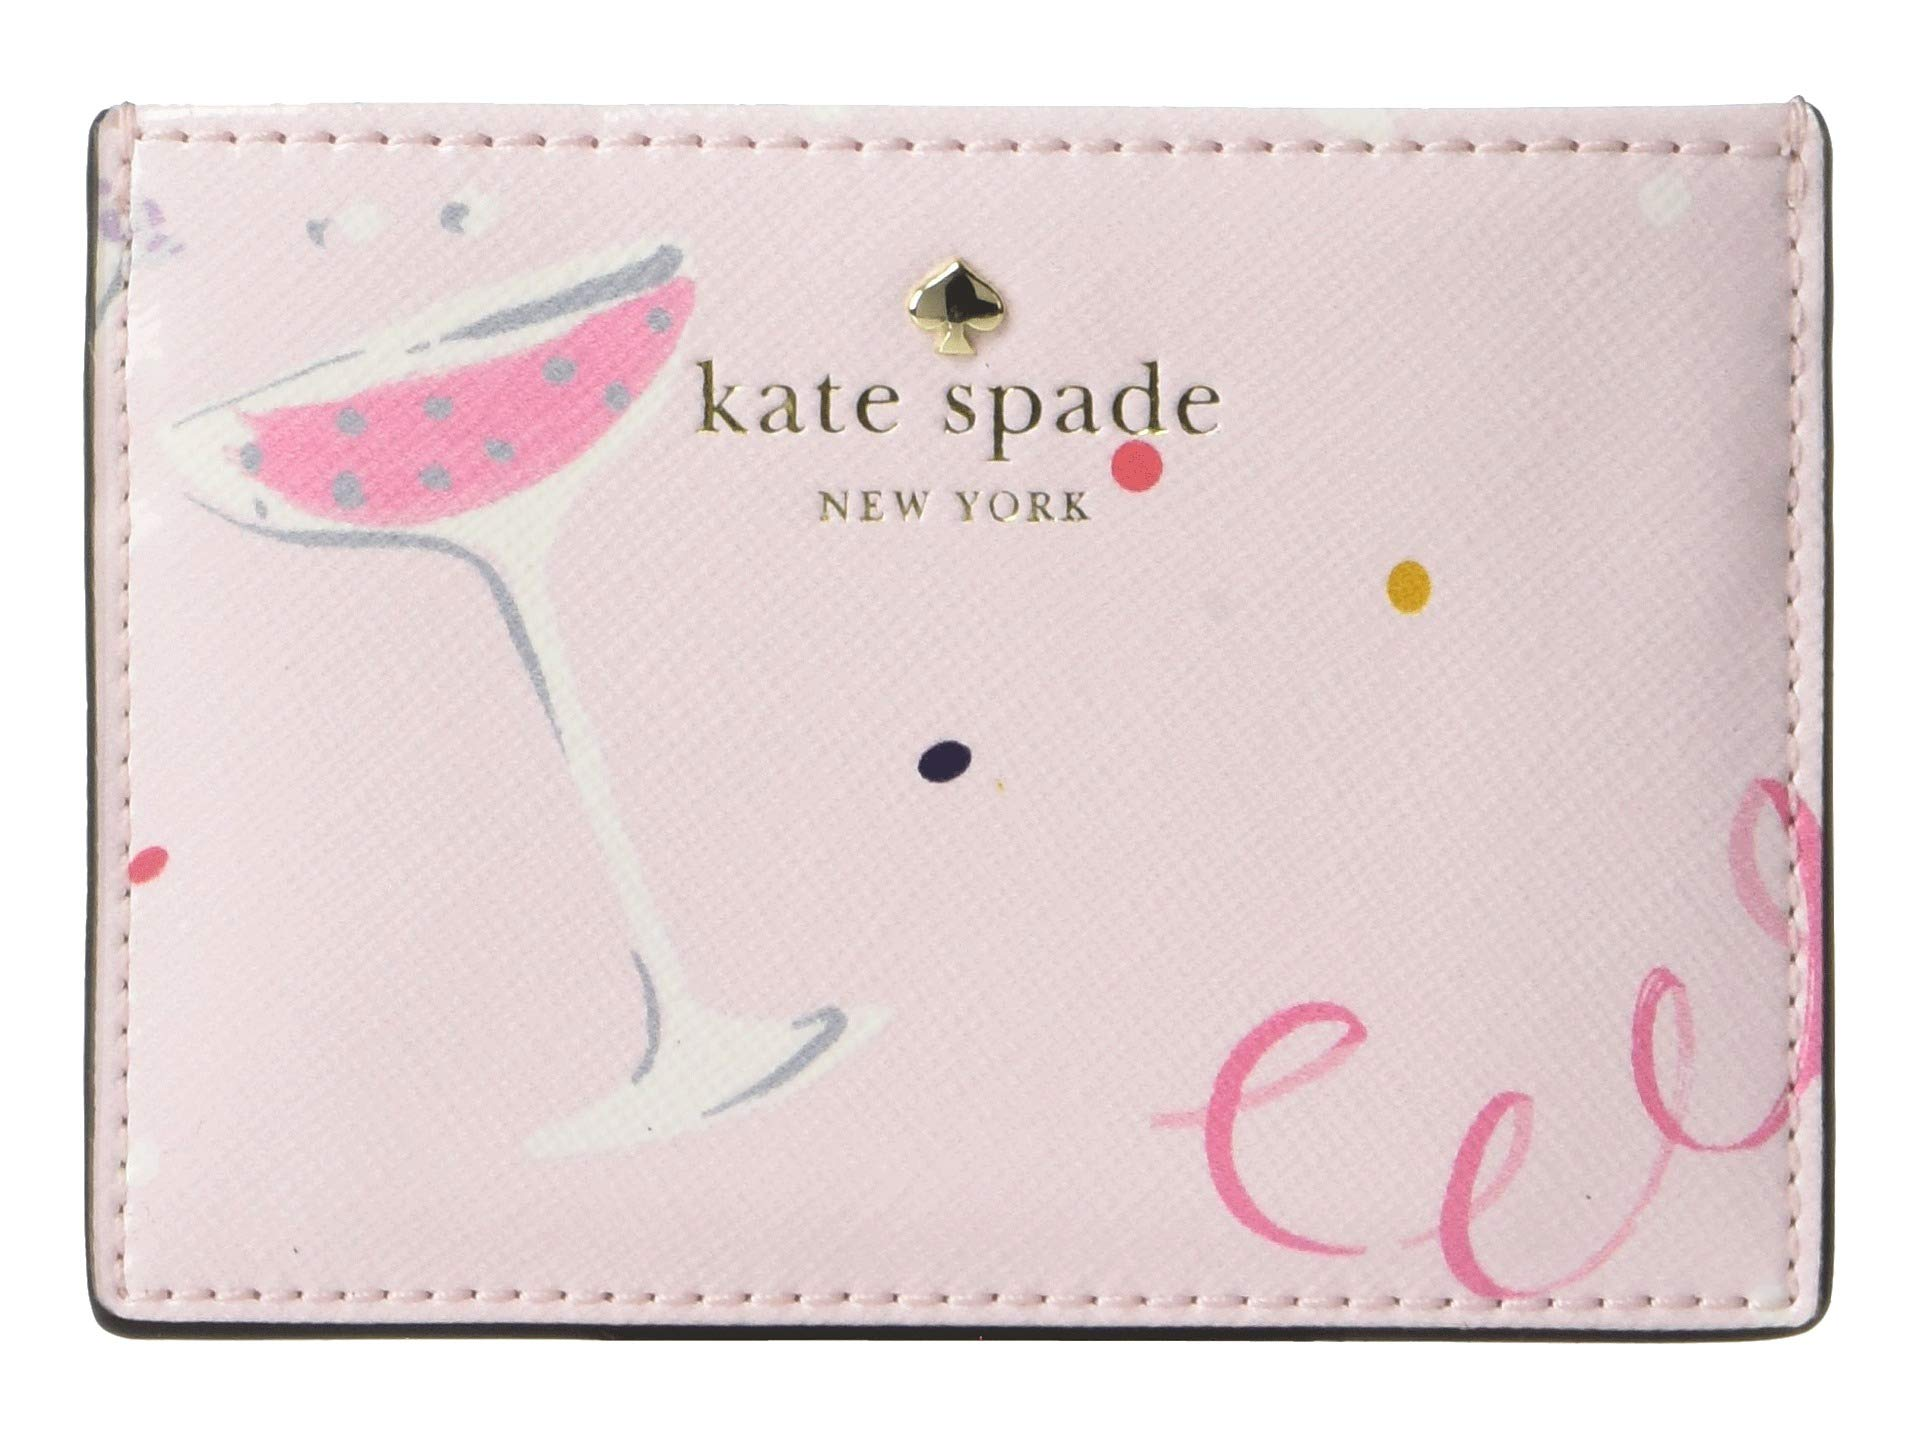 Kate Spade New York Women's Dashing Beauty Card Case, Multi, One Size by Kate Spade New York